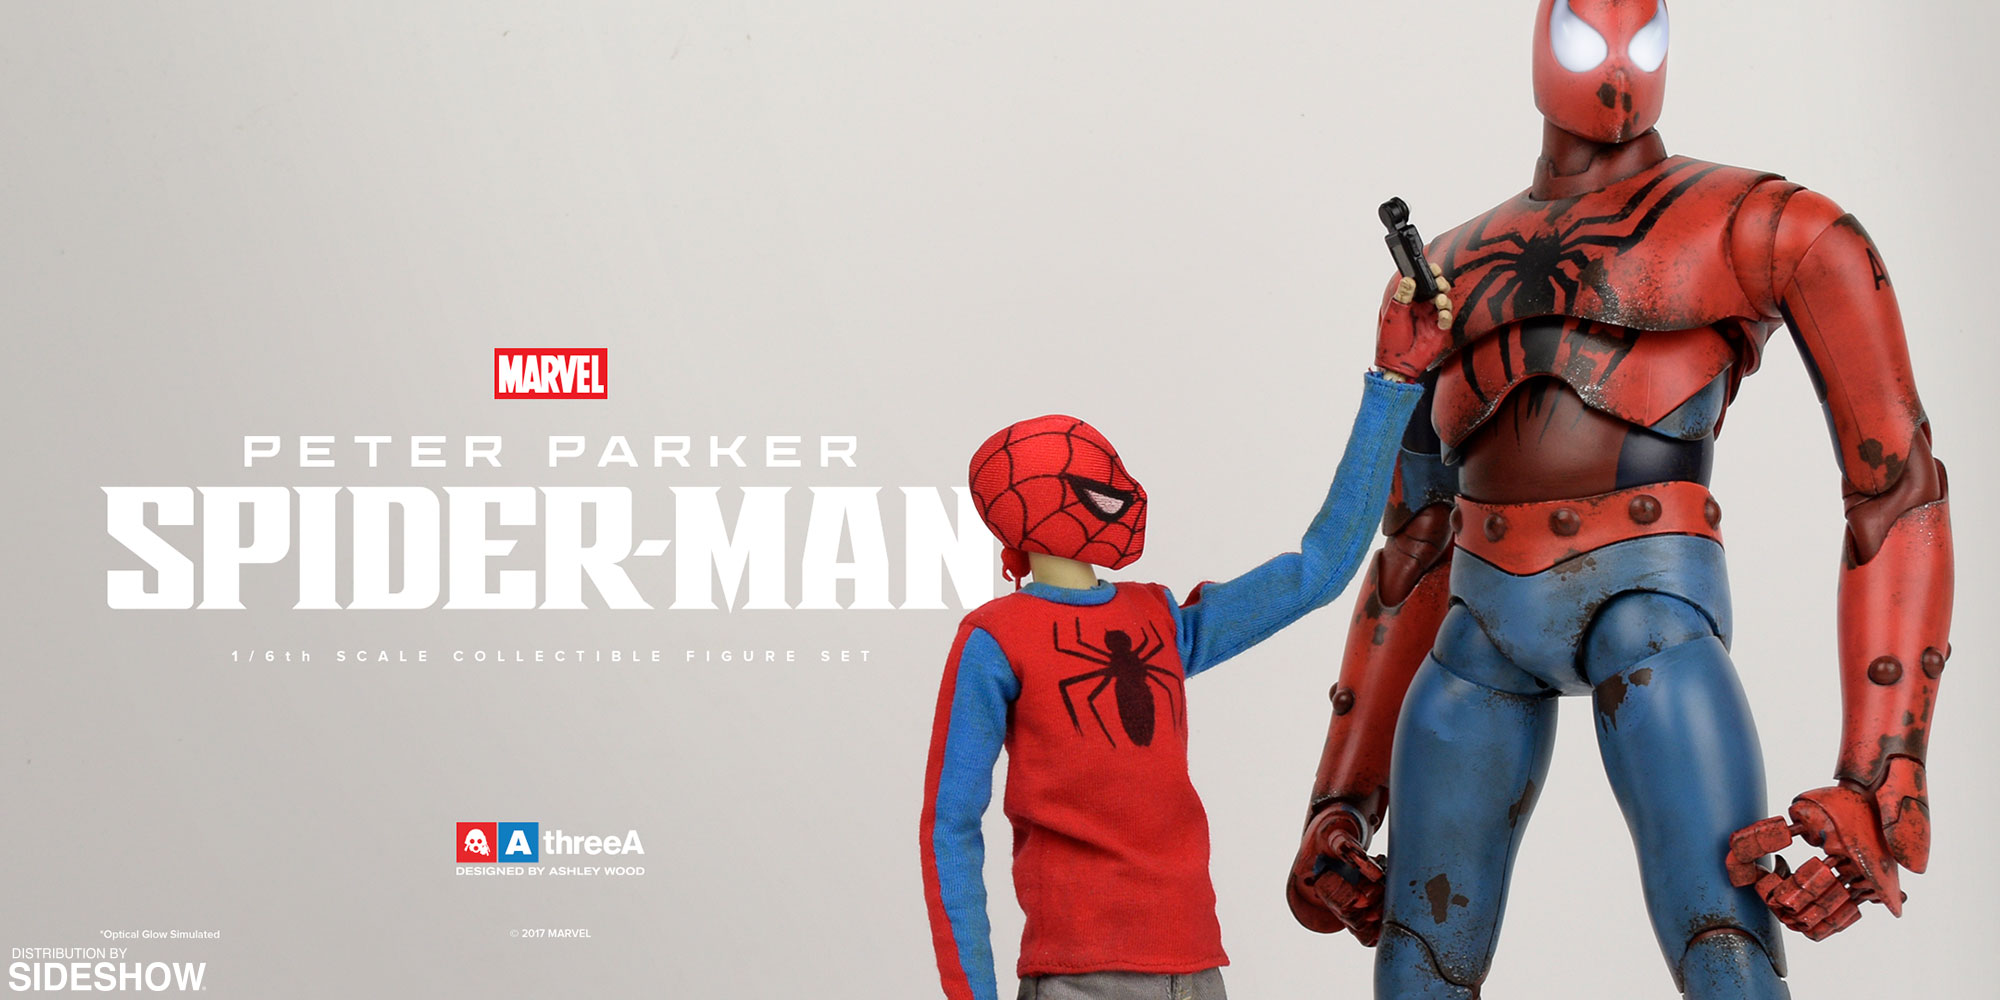 marvel peter parker and spider man sixth scale figure set by